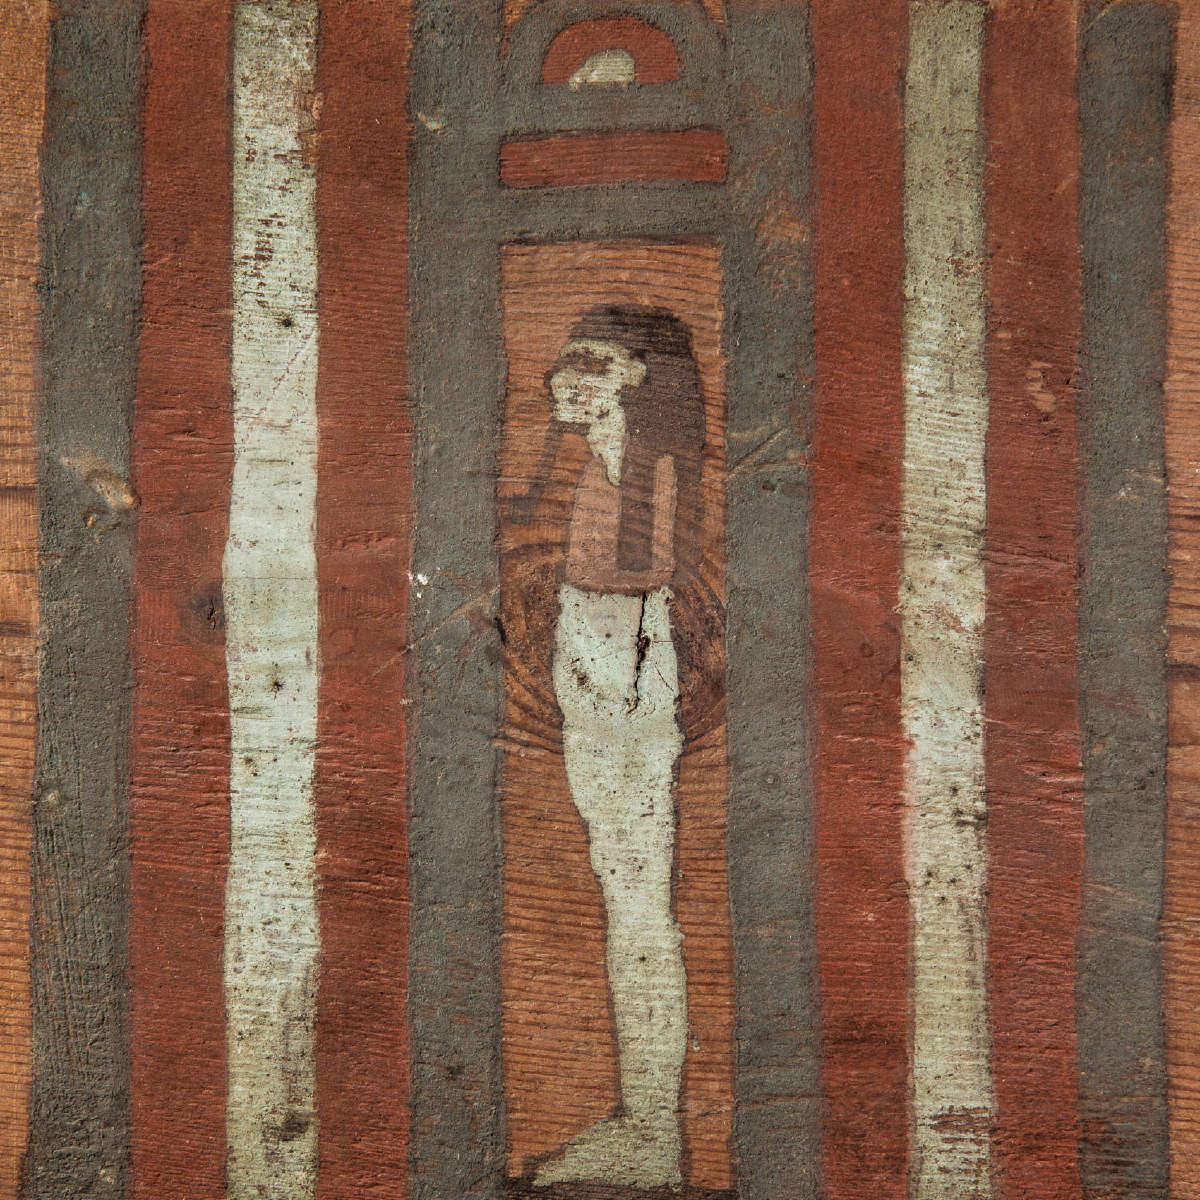 Photo ofWOODEN PANEL OF AN INNER COFFIN